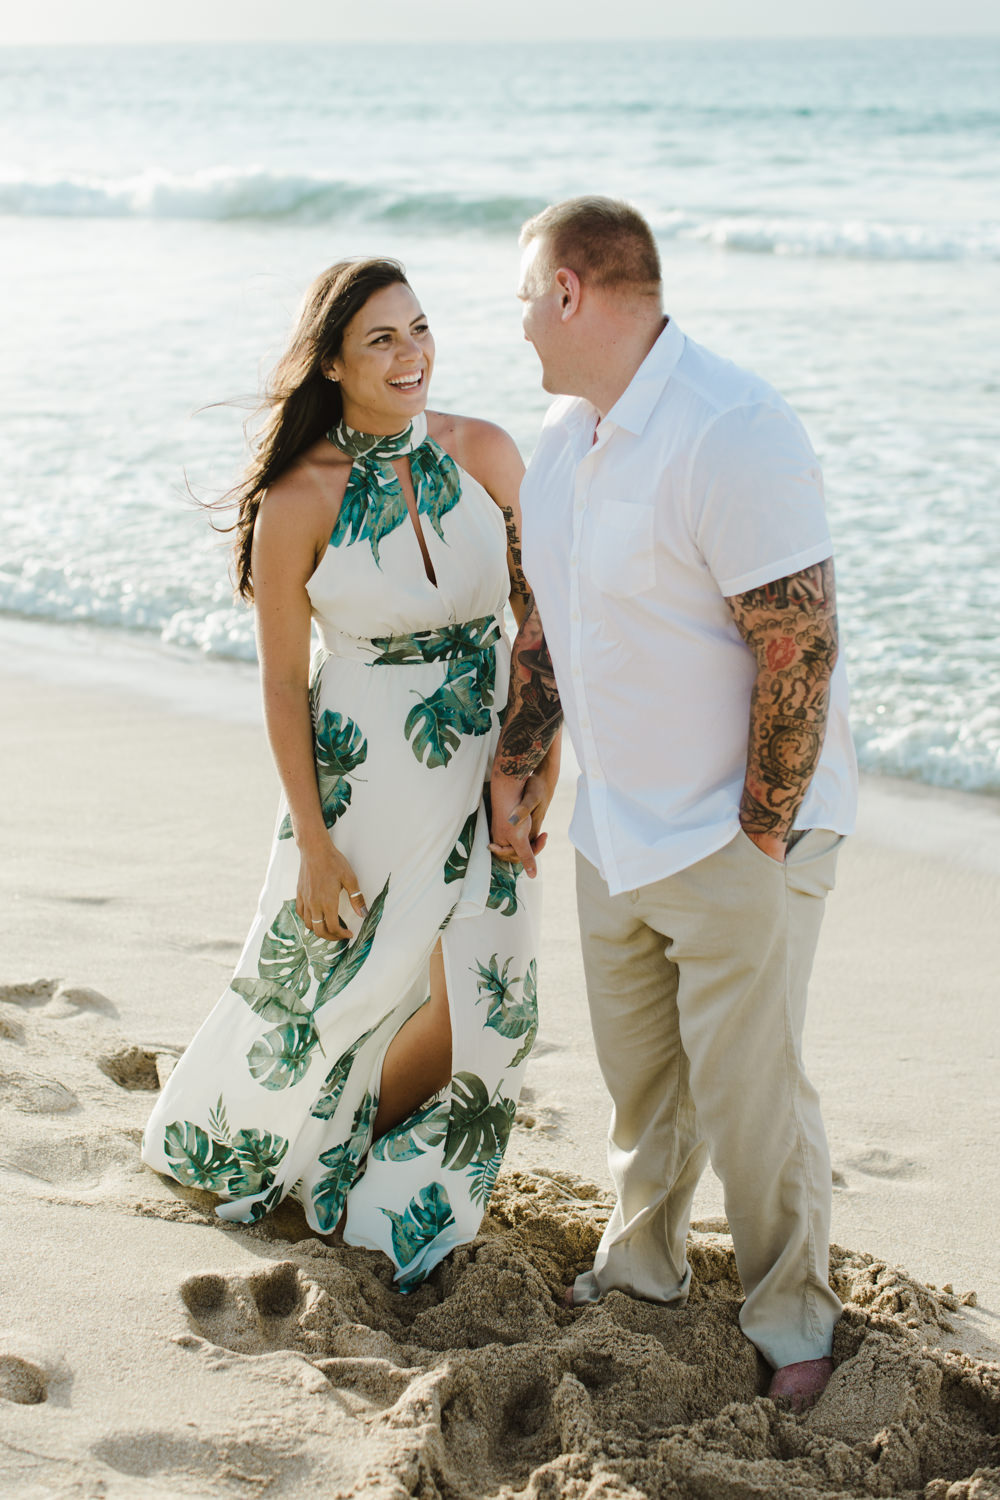 couples_photographer_maui_kapalua-2.jpg